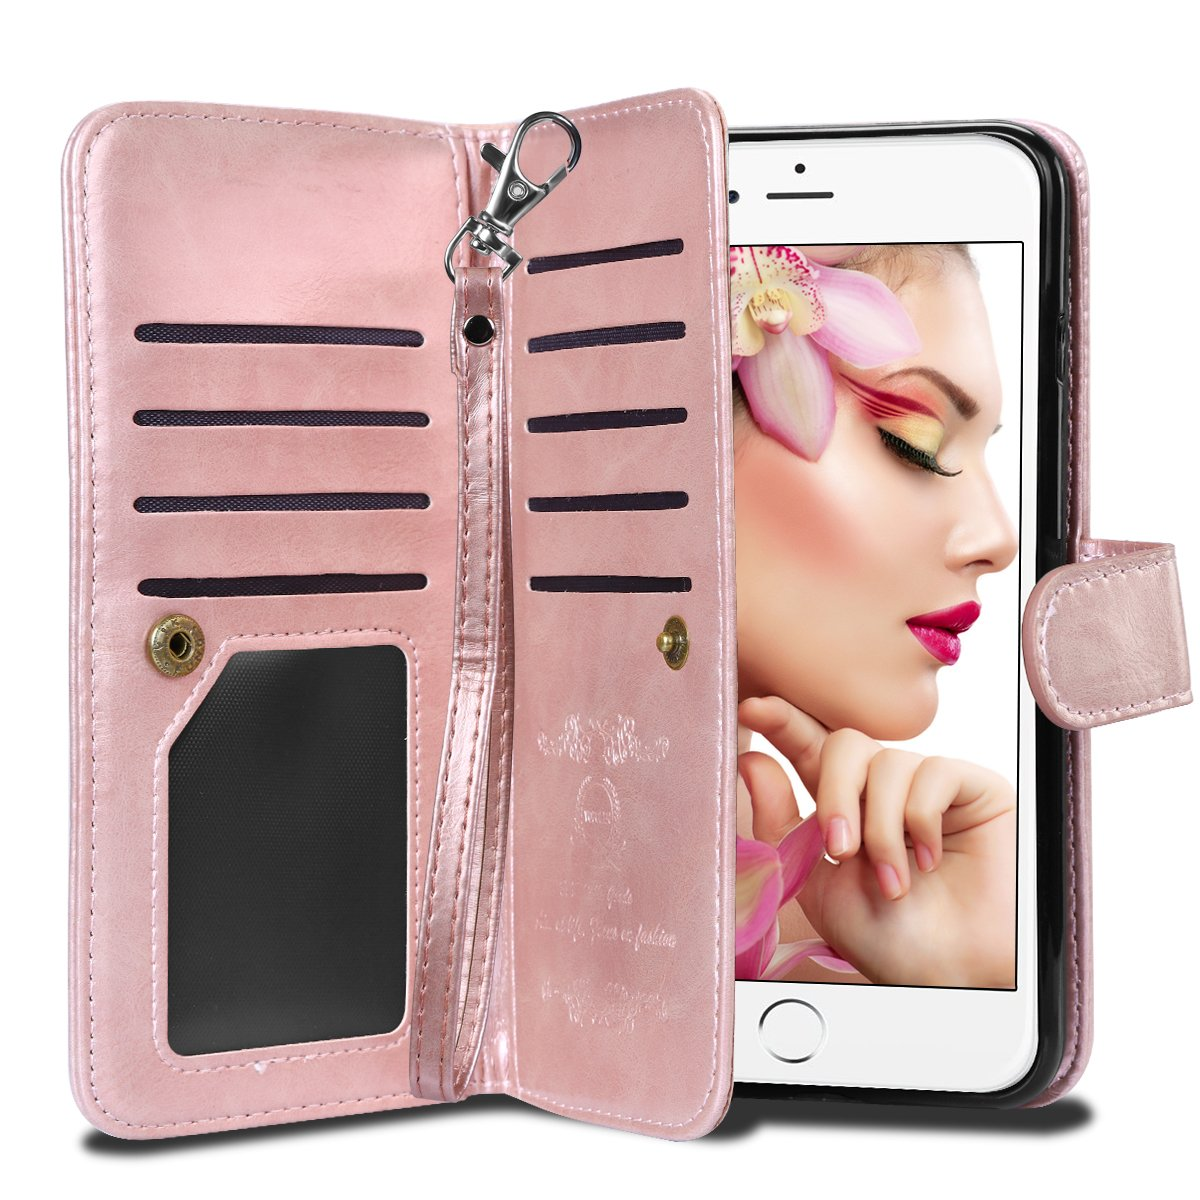 iPhone 6S Plus Case, Vofolen Detachable iPhone 6S Plus Wallet Case Flip Cover Magnetic Folio PU Leather Protective Slim Shell Card Holder Wrist Strap for iPhone 6 Plus 6S Plus 5.5'' - Rose Gold